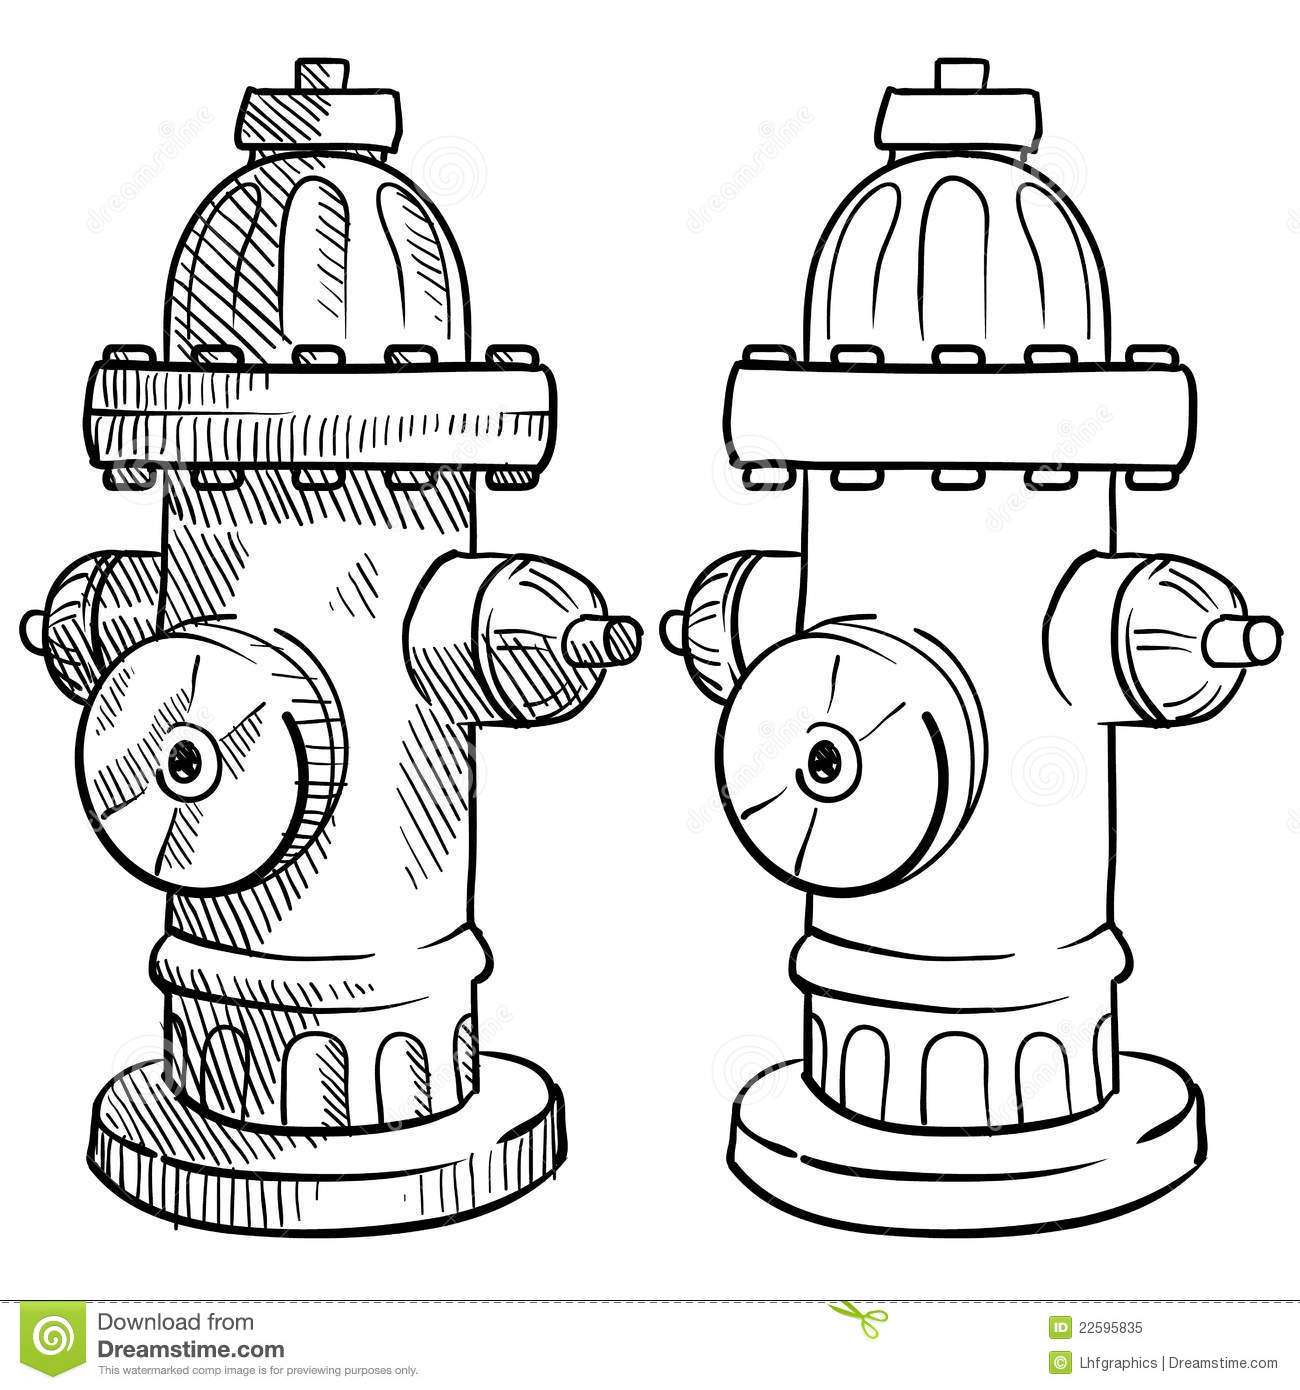 Fire hydrant sketch stock vector illustration of for Fire hydrant coloring page